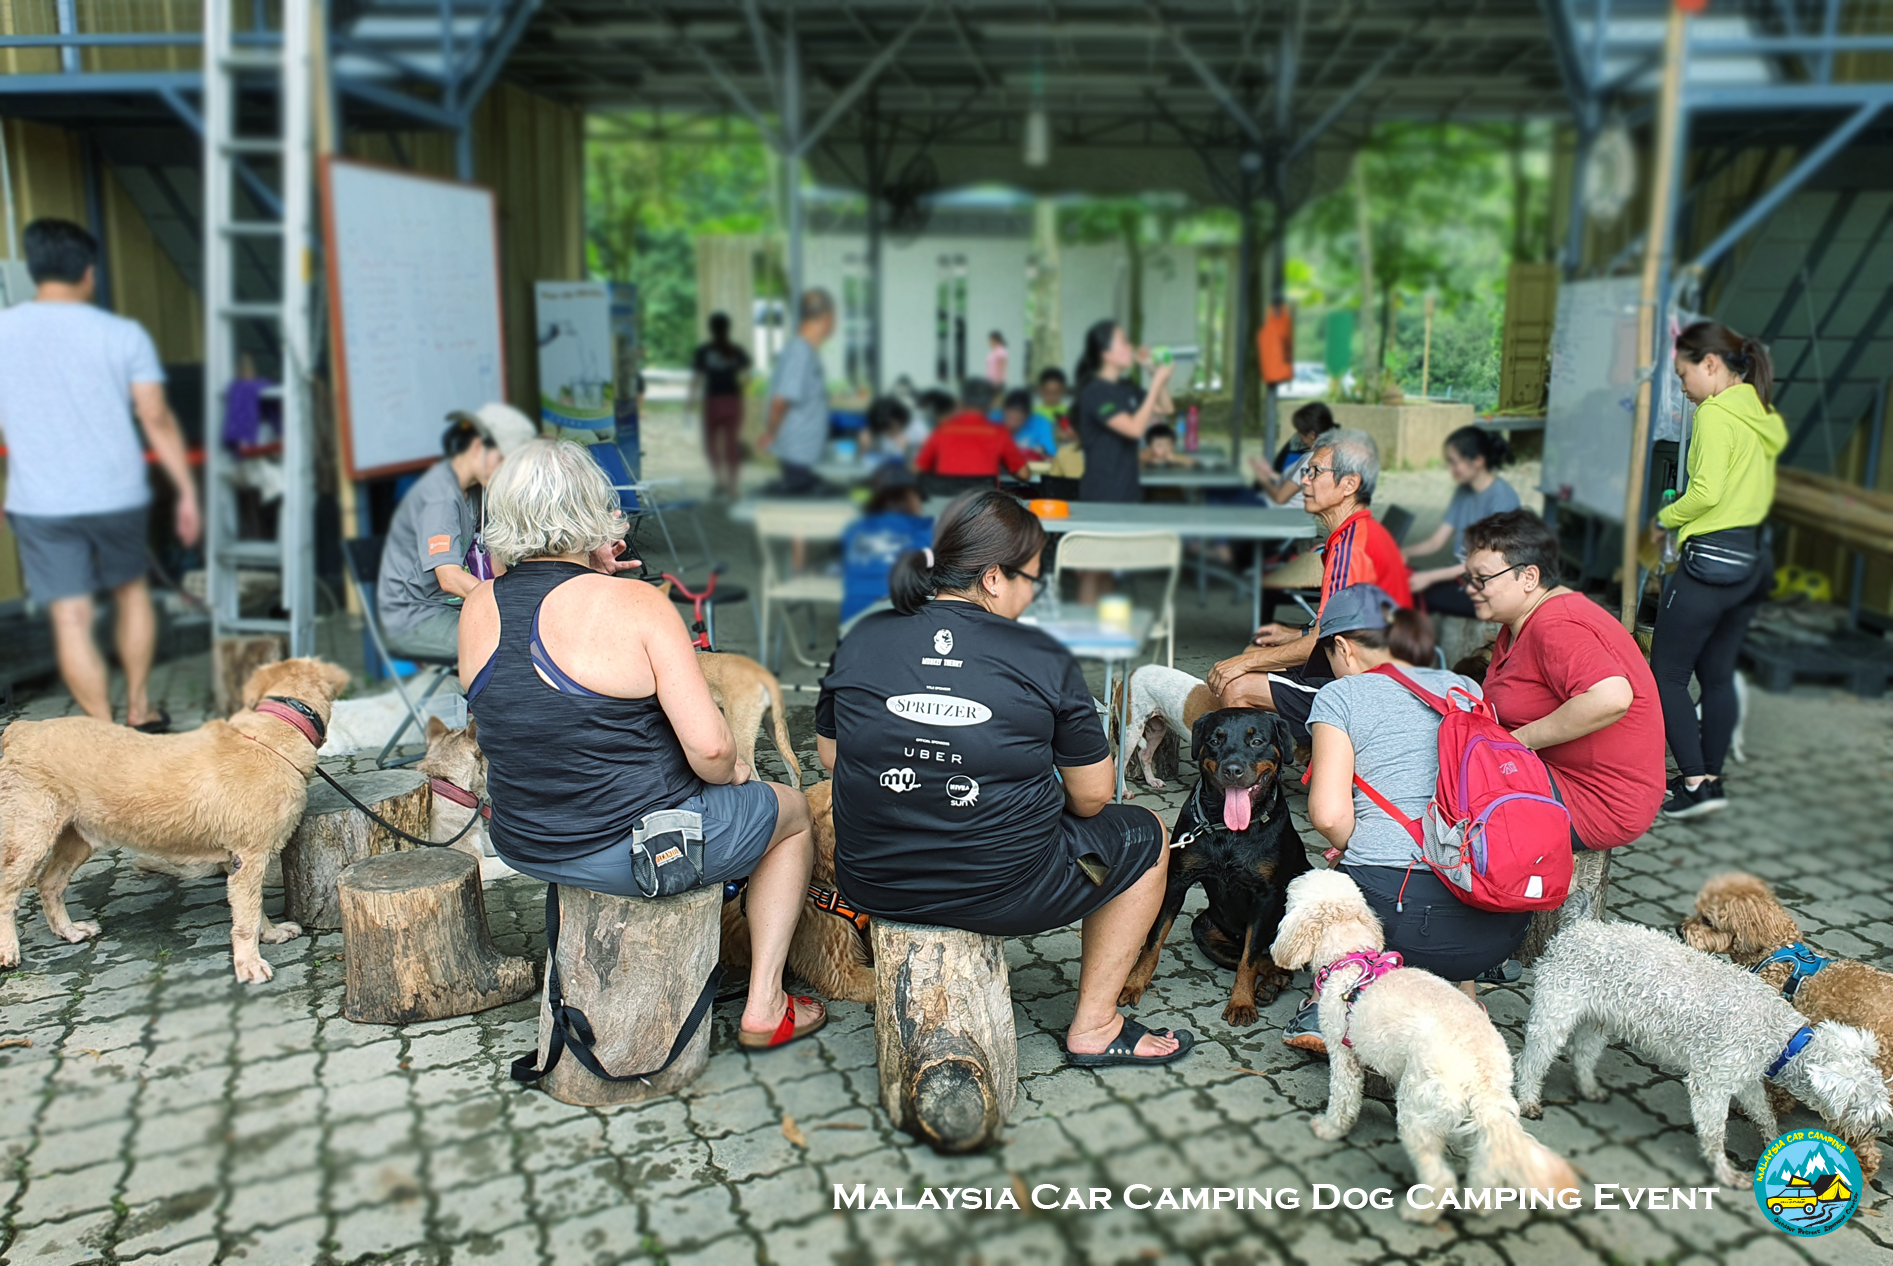 dog_camping_event_dog_lover_selangor_camping_site_malaysia_car_camping_private_event_organizer-8